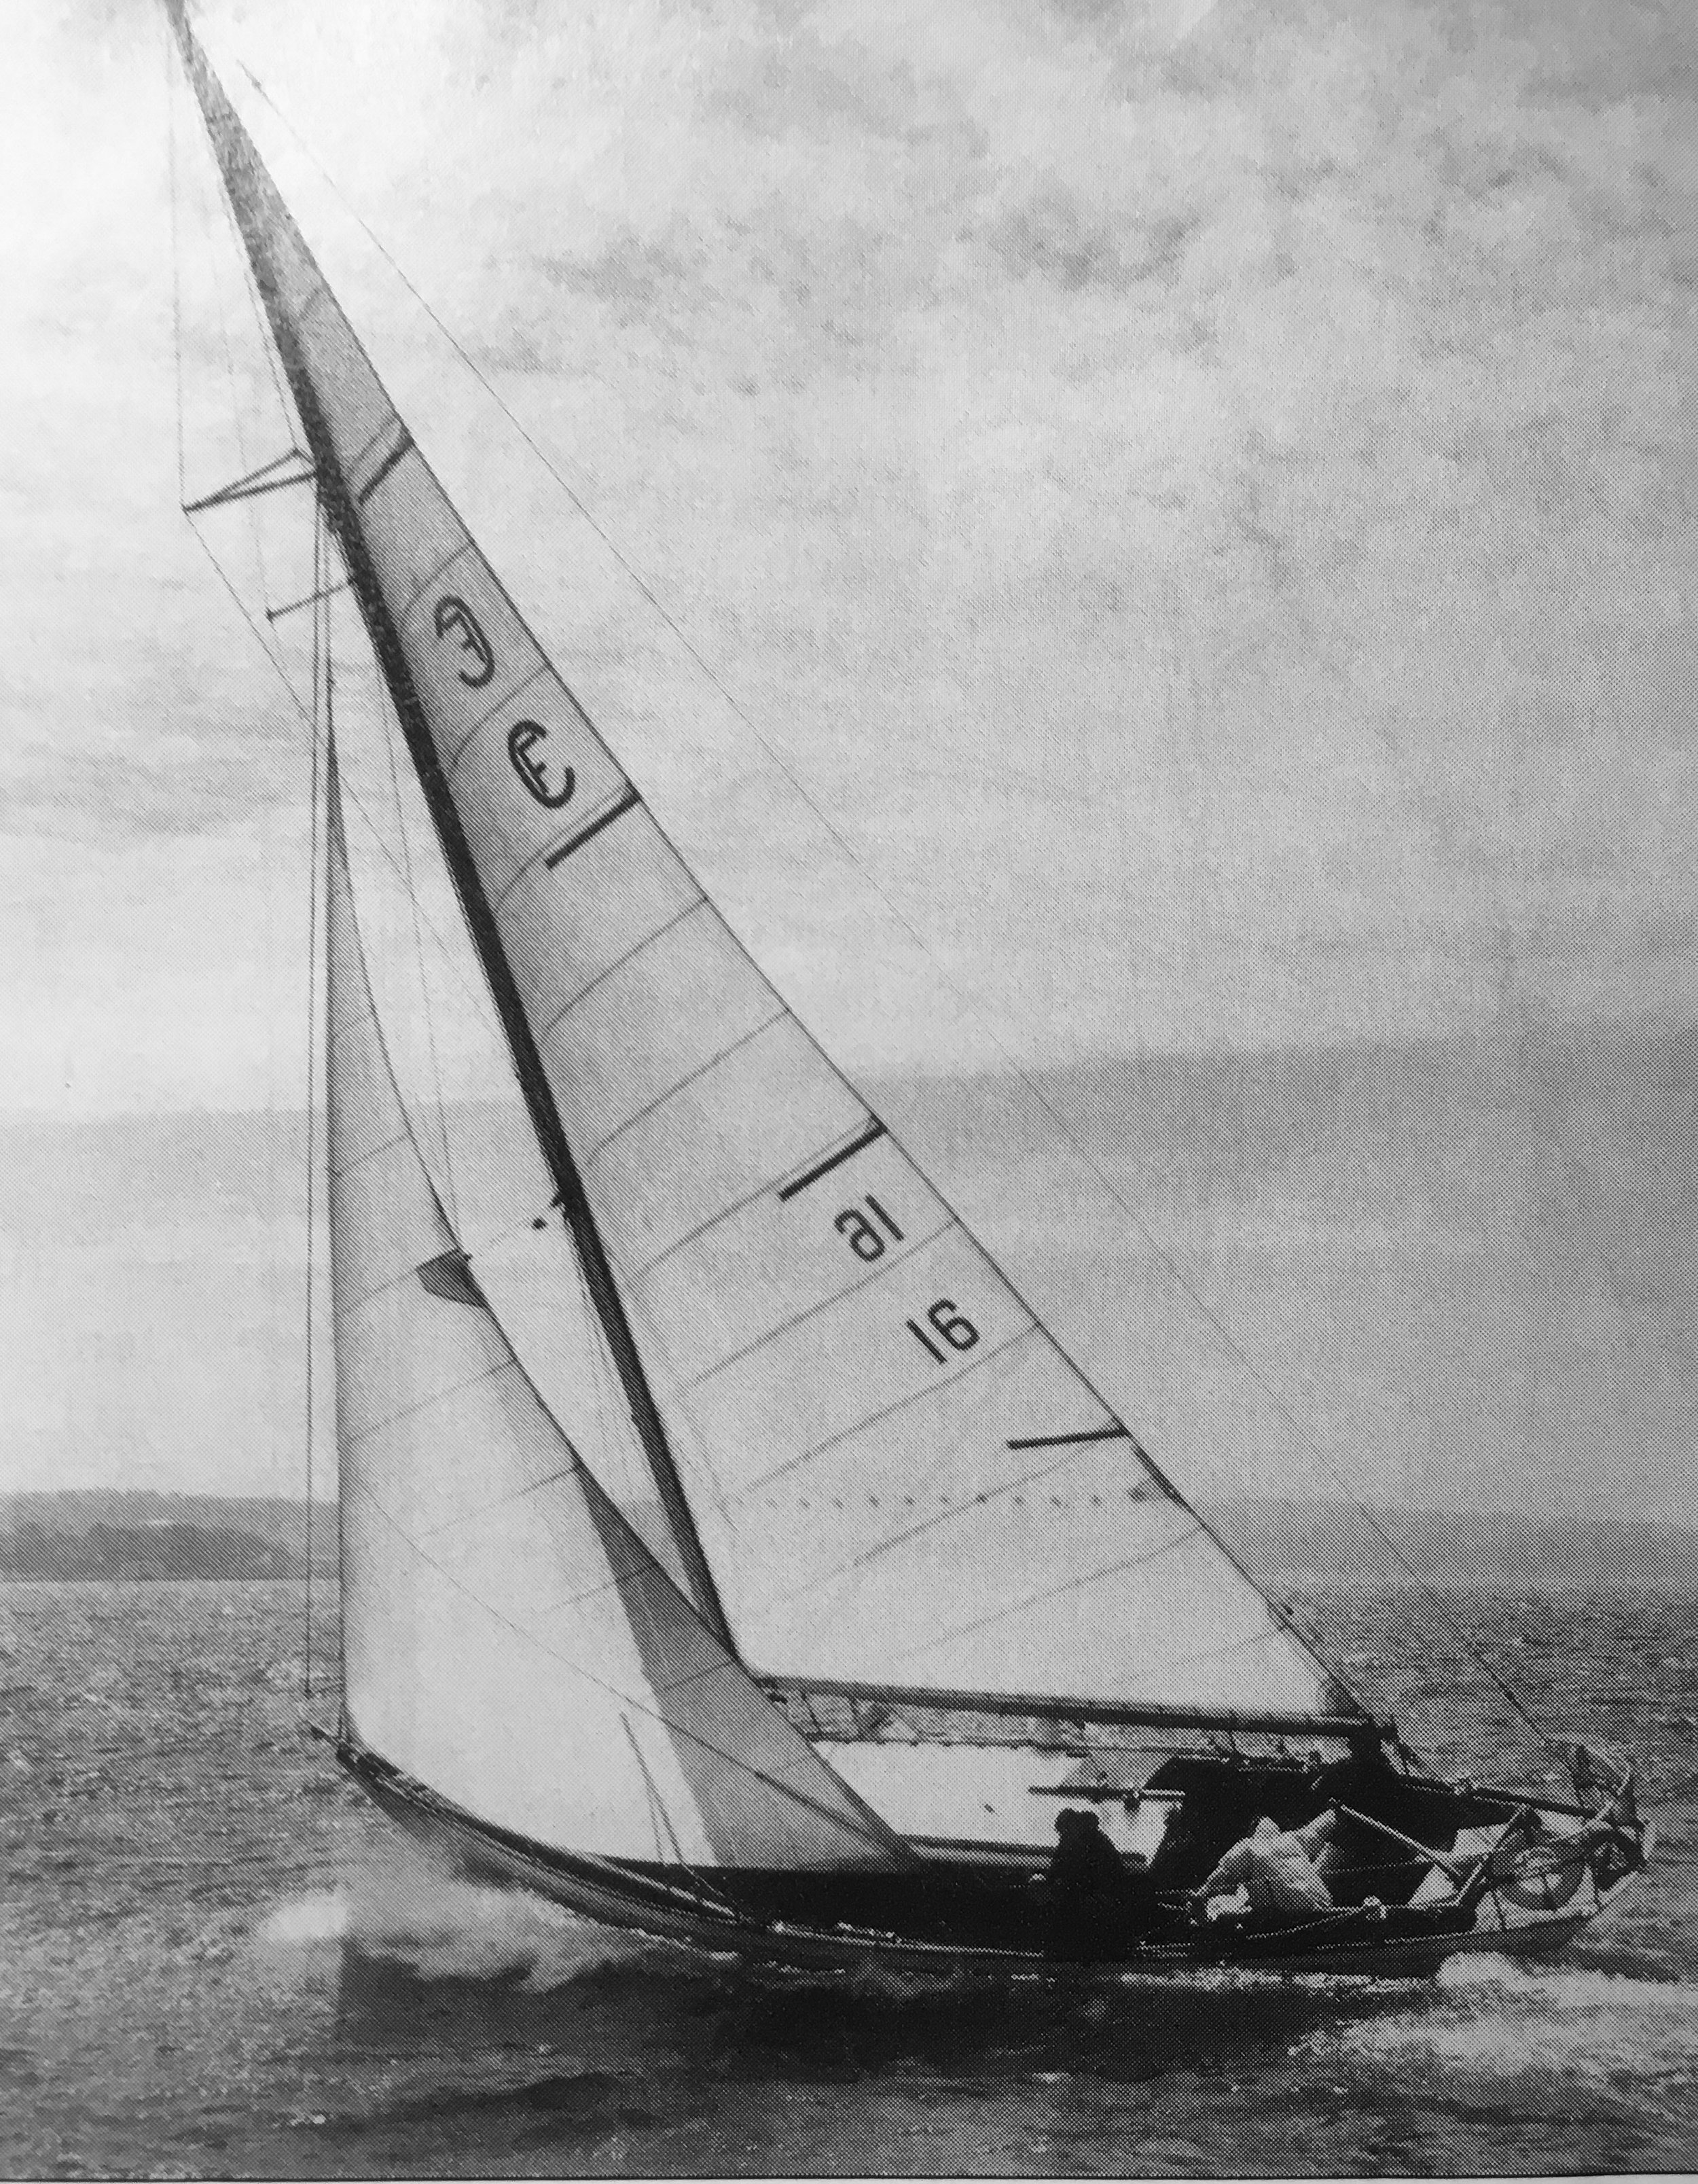 CIRCE, pictured here in the days before her masthead rig, was one of only two Farallone Clippers ordered with teak decks. Her planking was evenly color-matched as well, for a bright finish, although she was later painted.